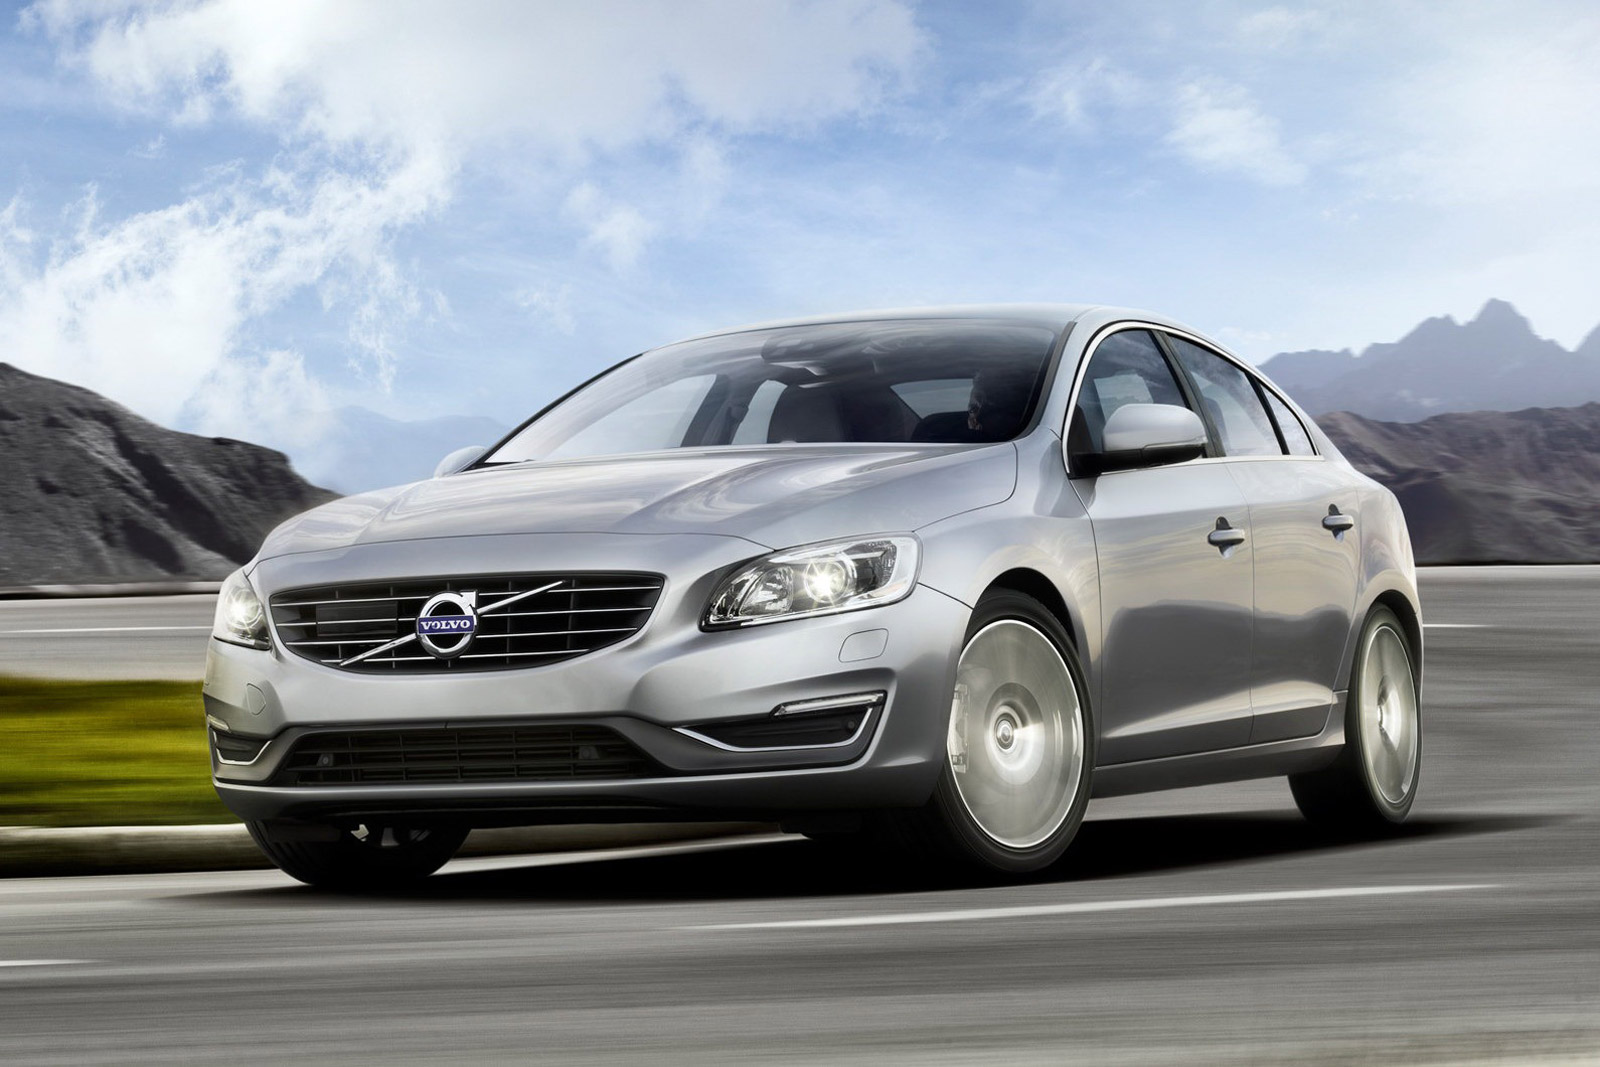 2017 Volvo S60 S80 Xc60 And Xc70 Recalled For Electrical Problems